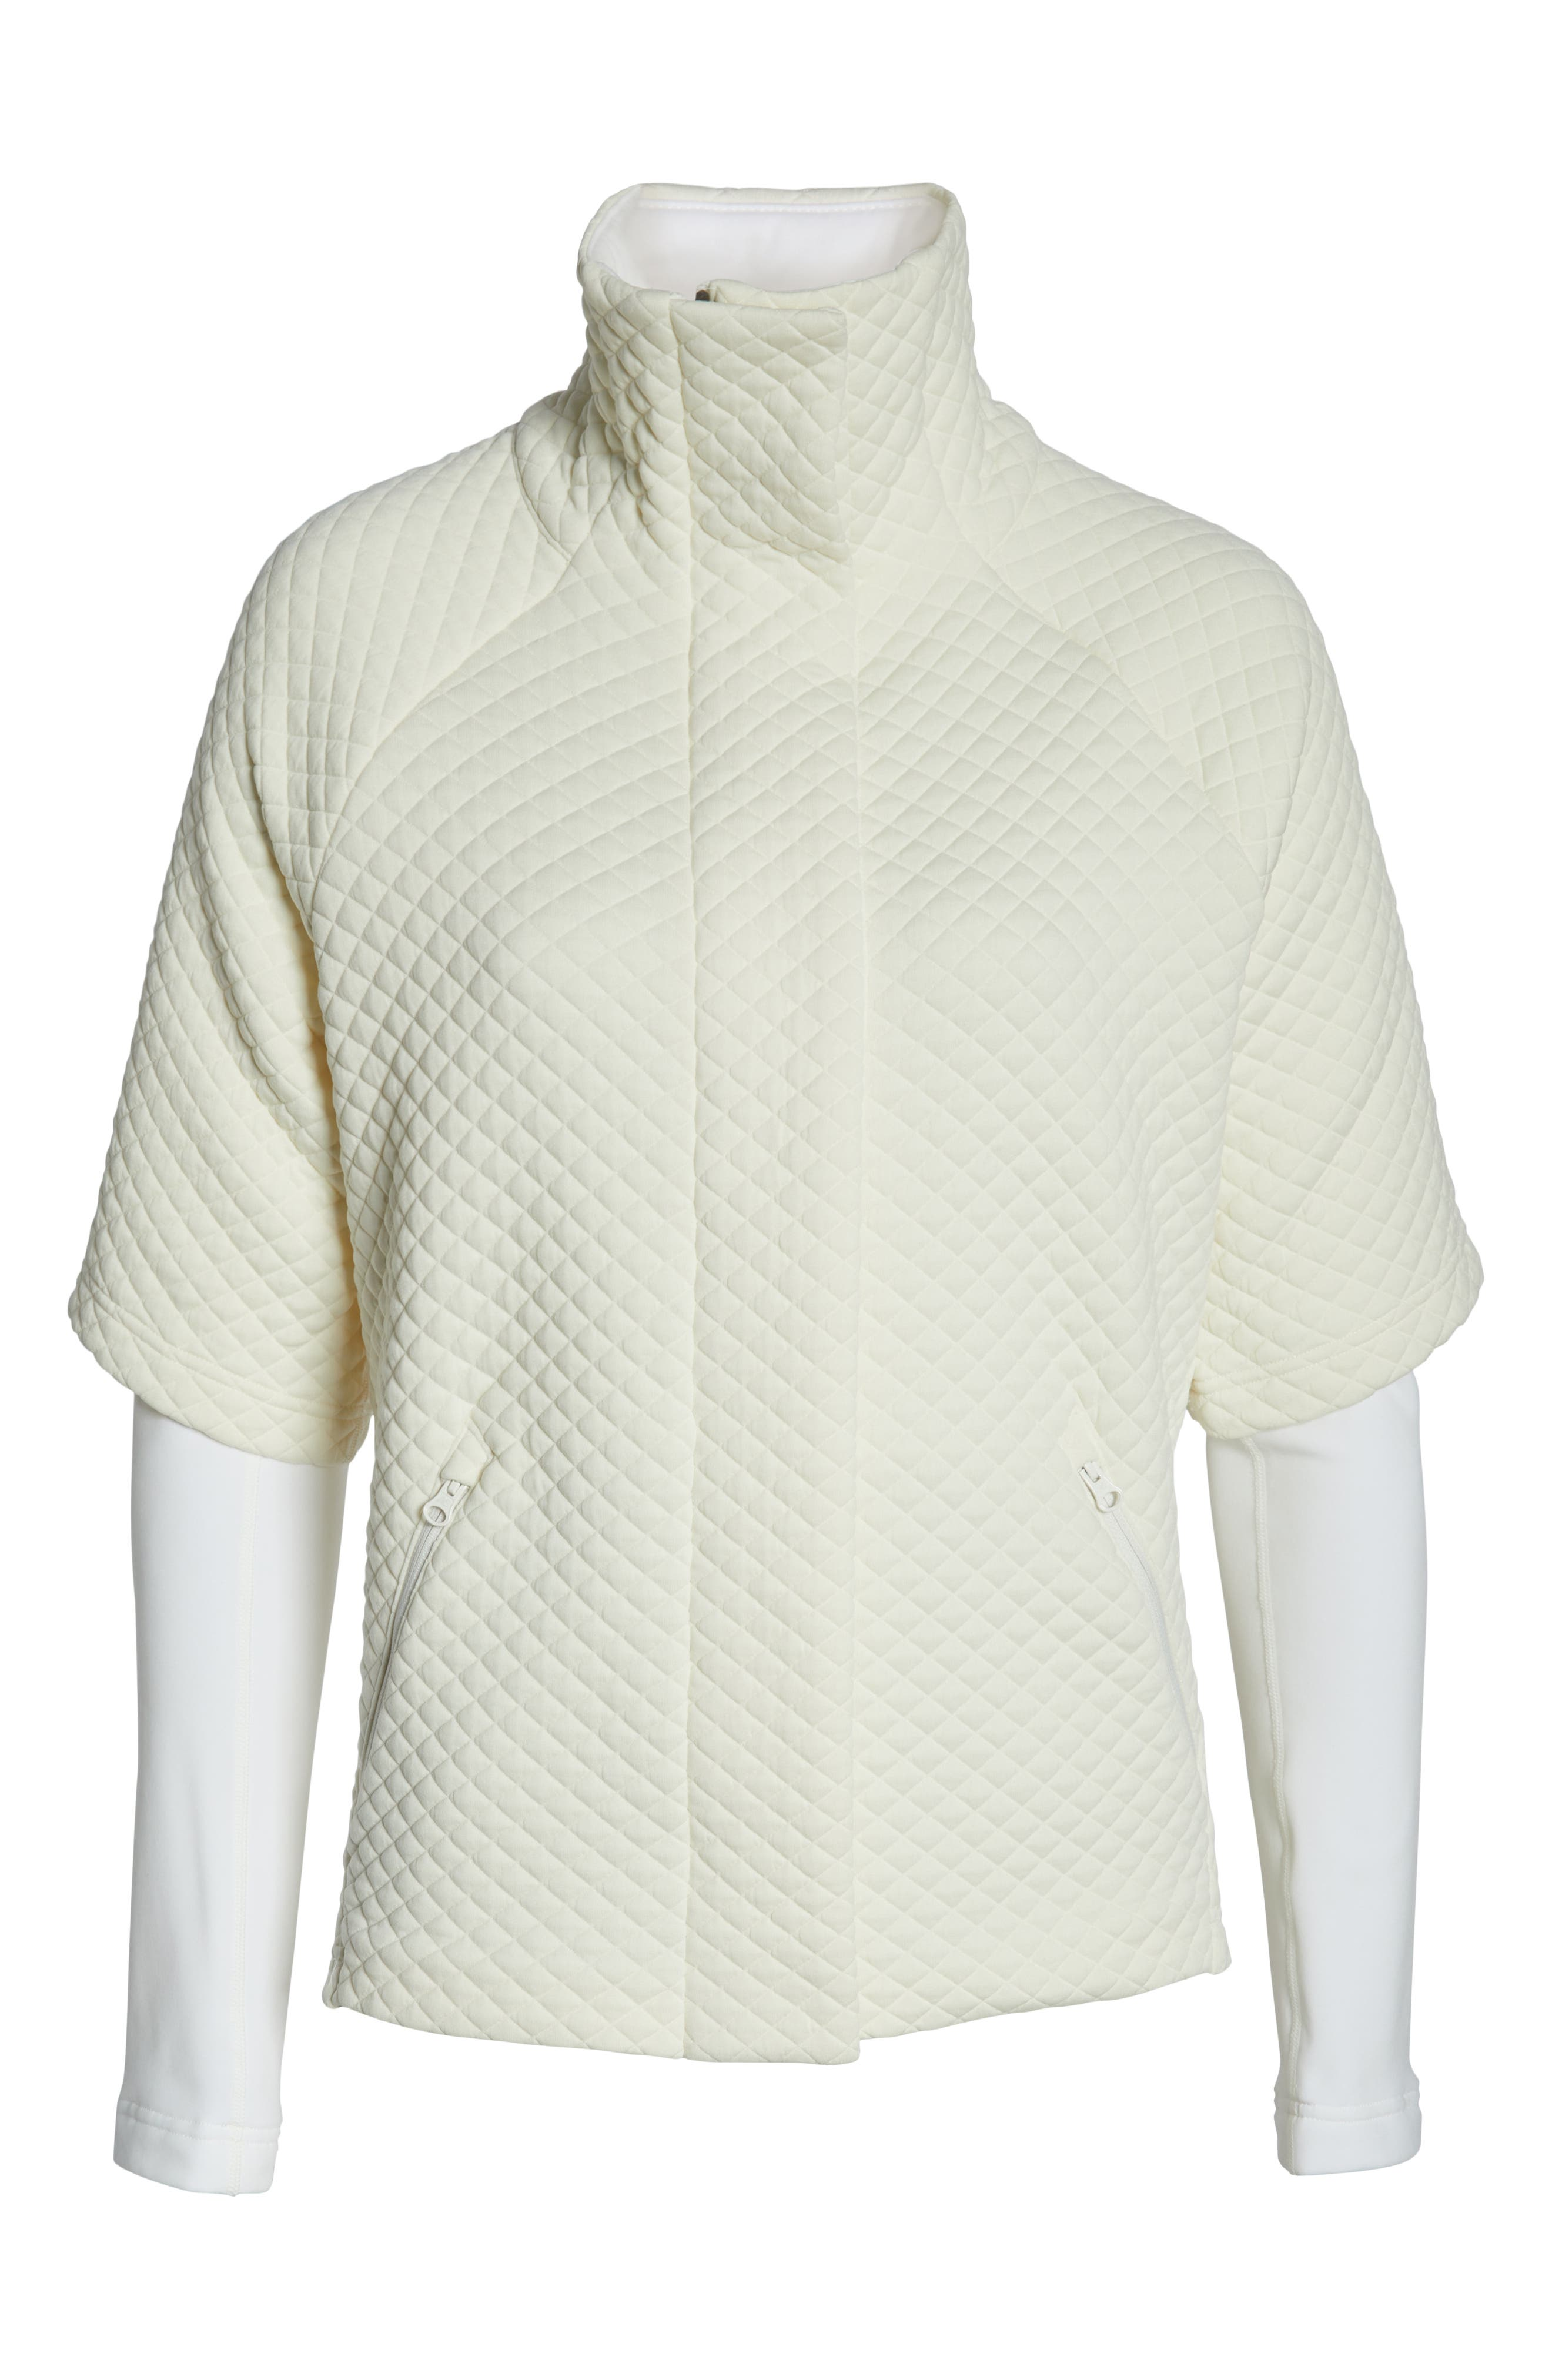 NEW BALANCE,                             Heat Loft Intensity Jacket,                             Alternate thumbnail 6, color,                             900